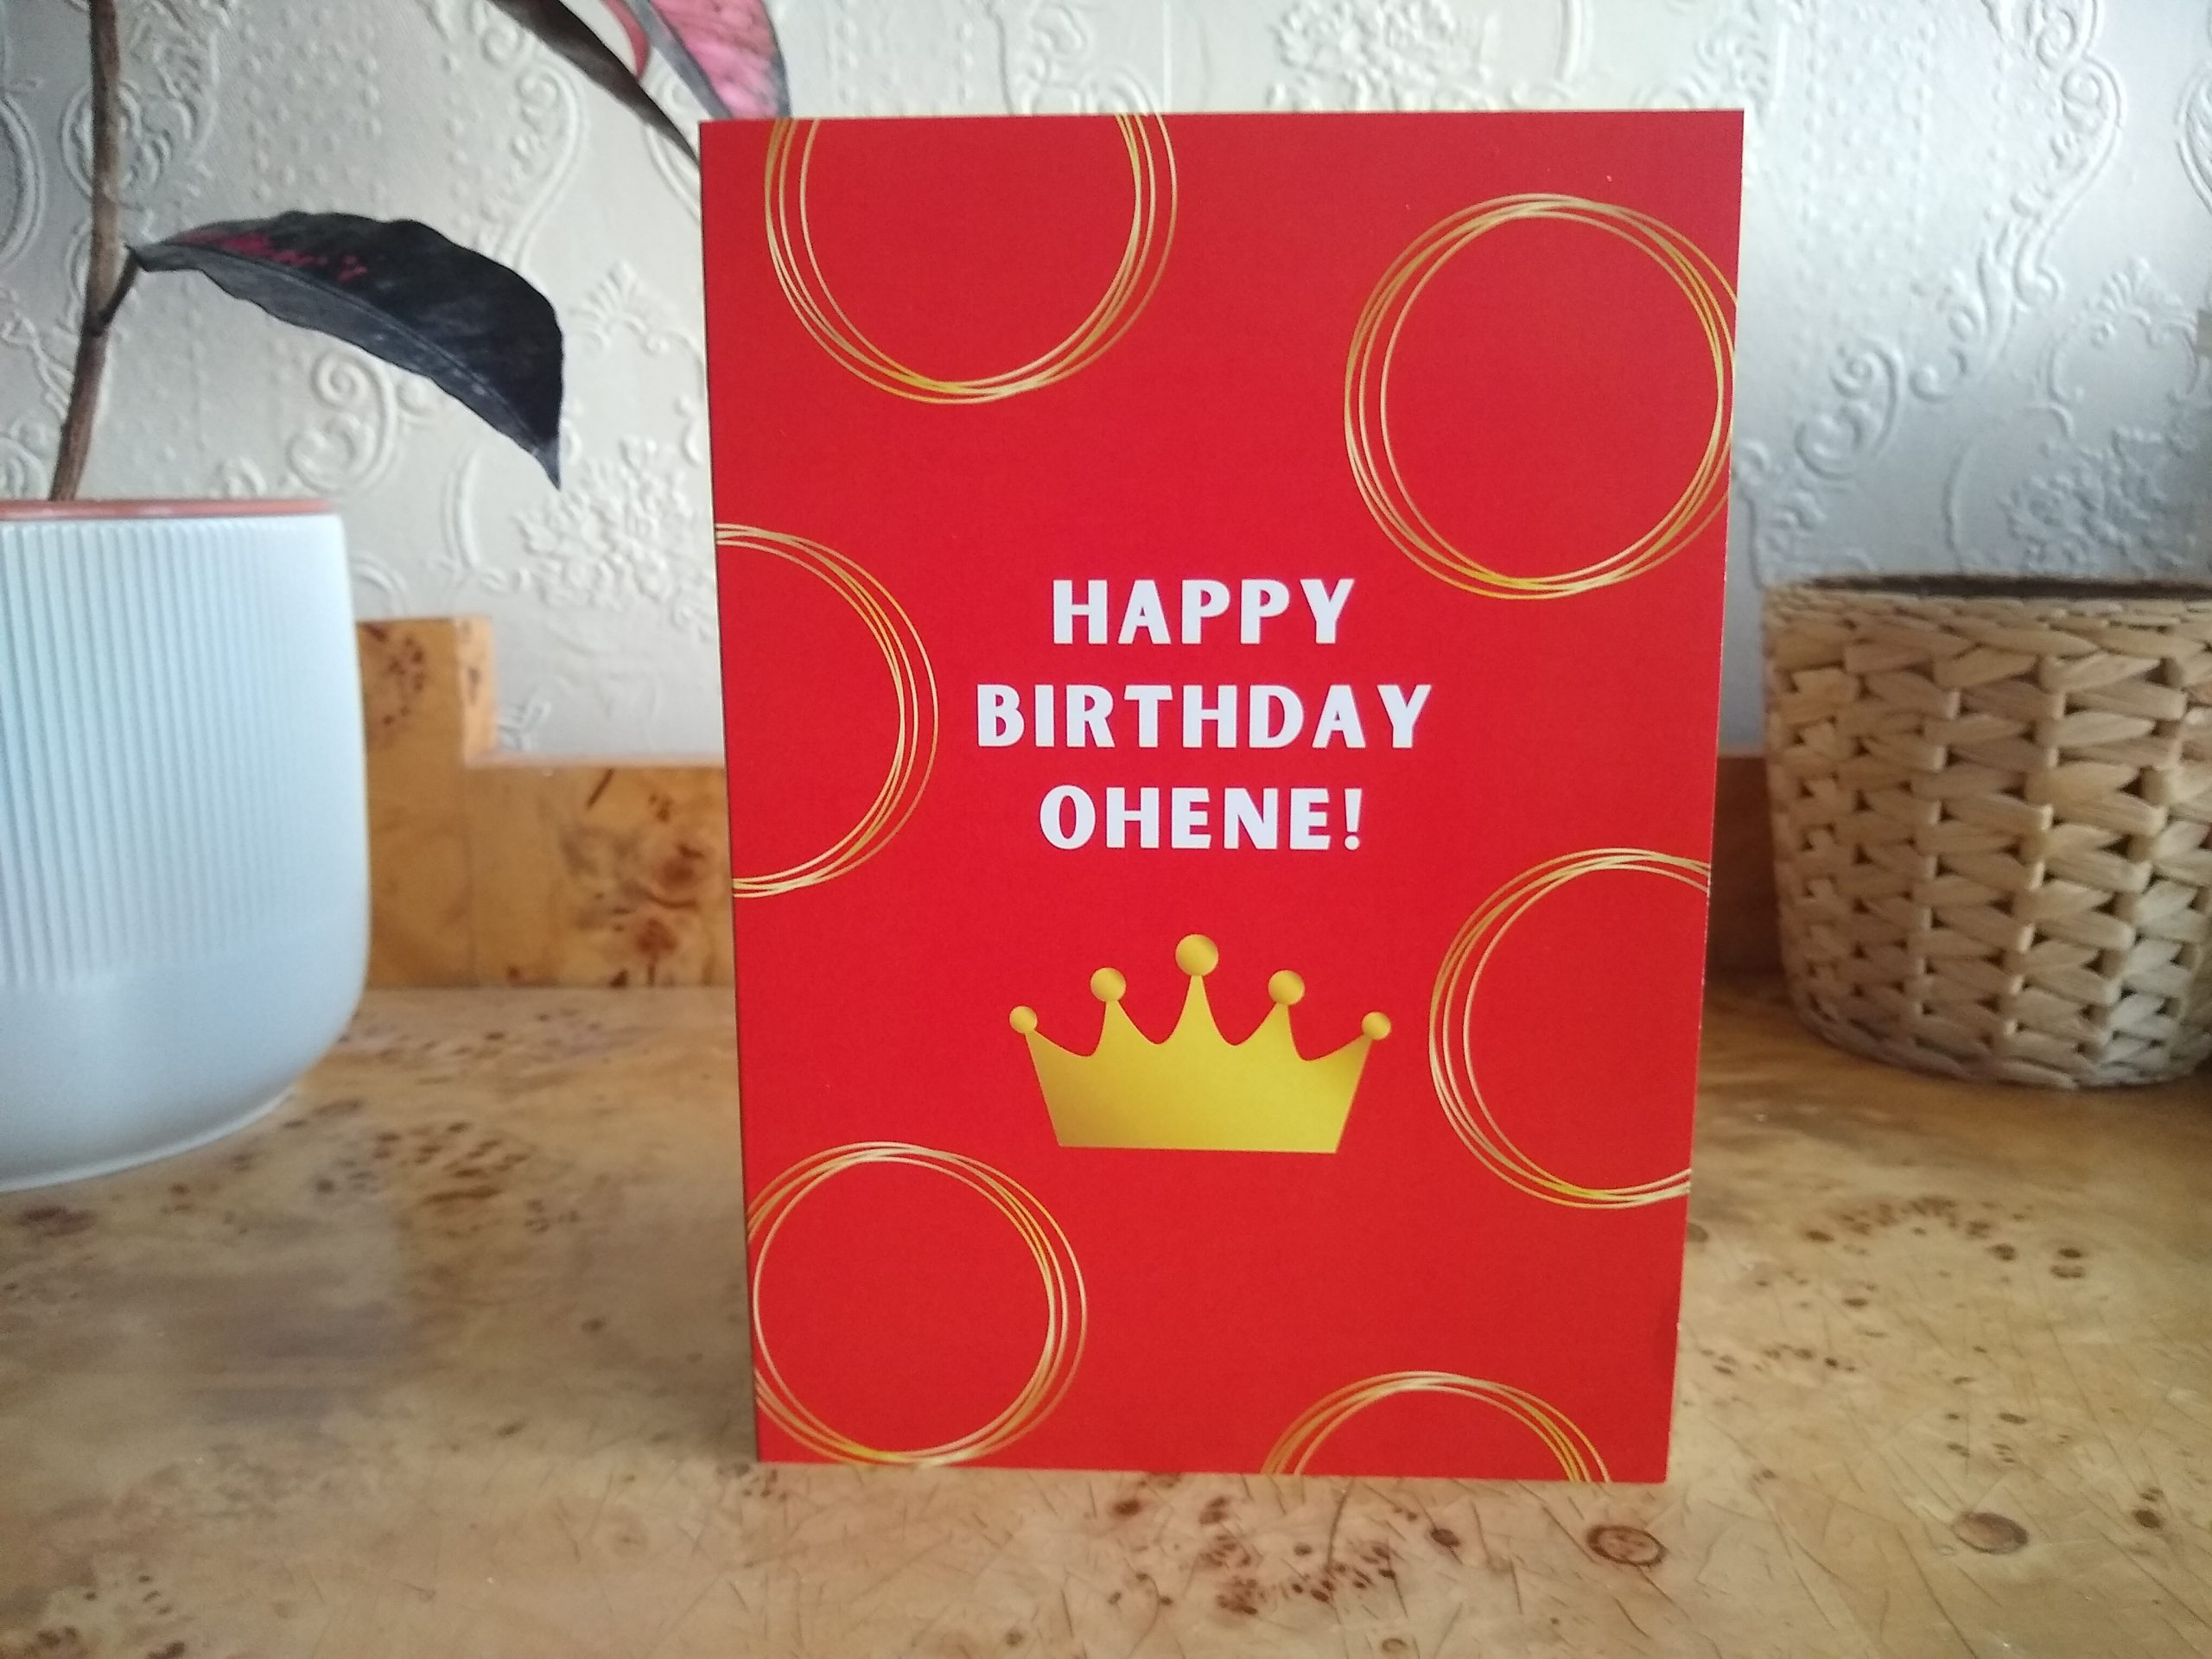 Happy Birthday Ohene written in gold on a red background with a gold crown underneath and gold circles all over the card